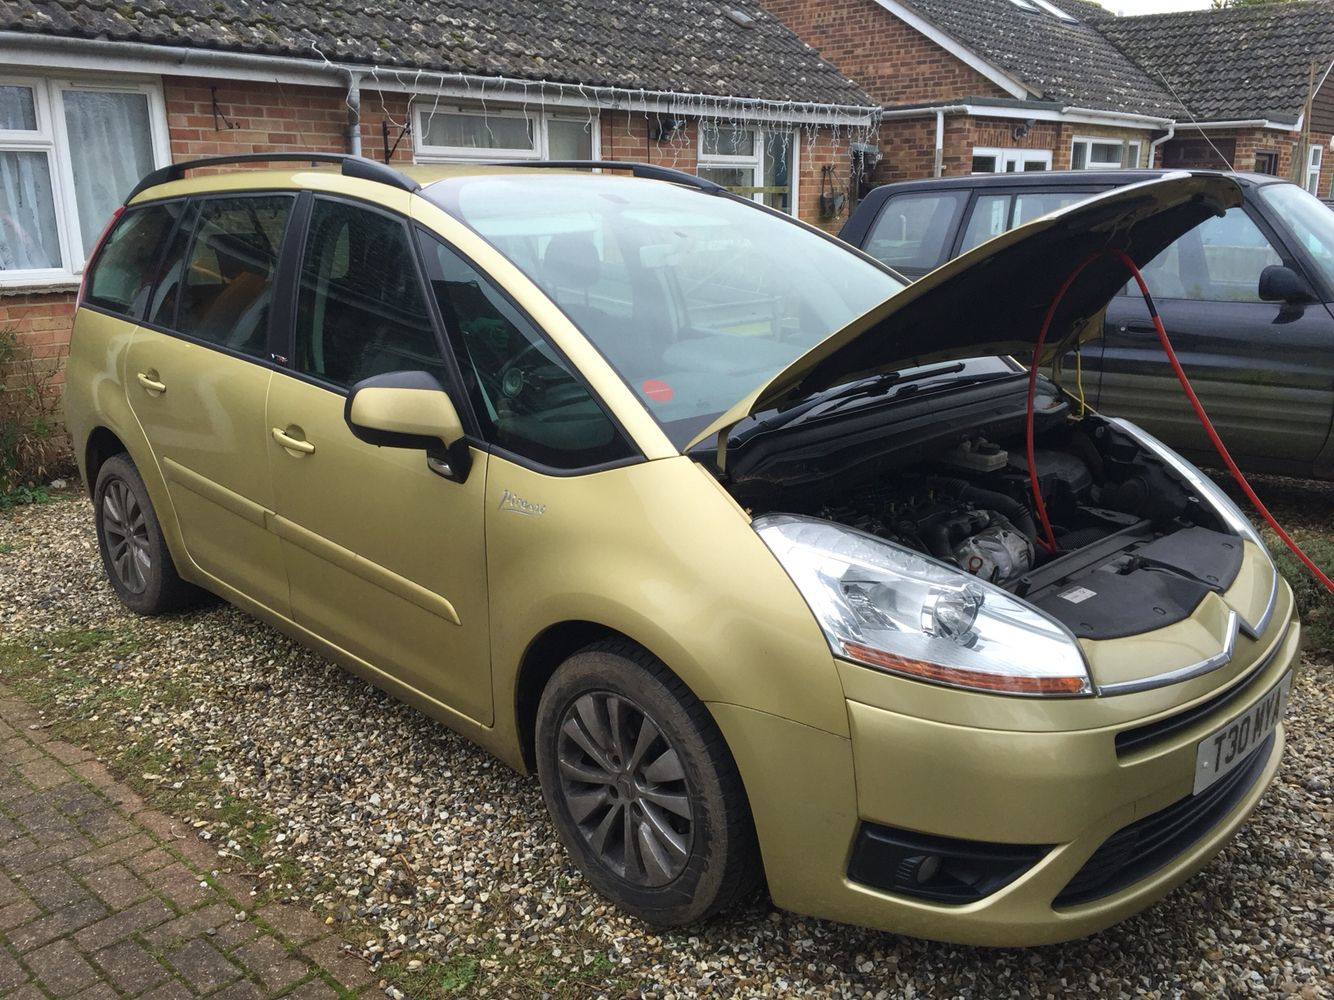 citroen c4 picasso 1 6 hdi gets an engine carbon clean to resolve poor egr valve and turbo. Black Bedroom Furniture Sets. Home Design Ideas